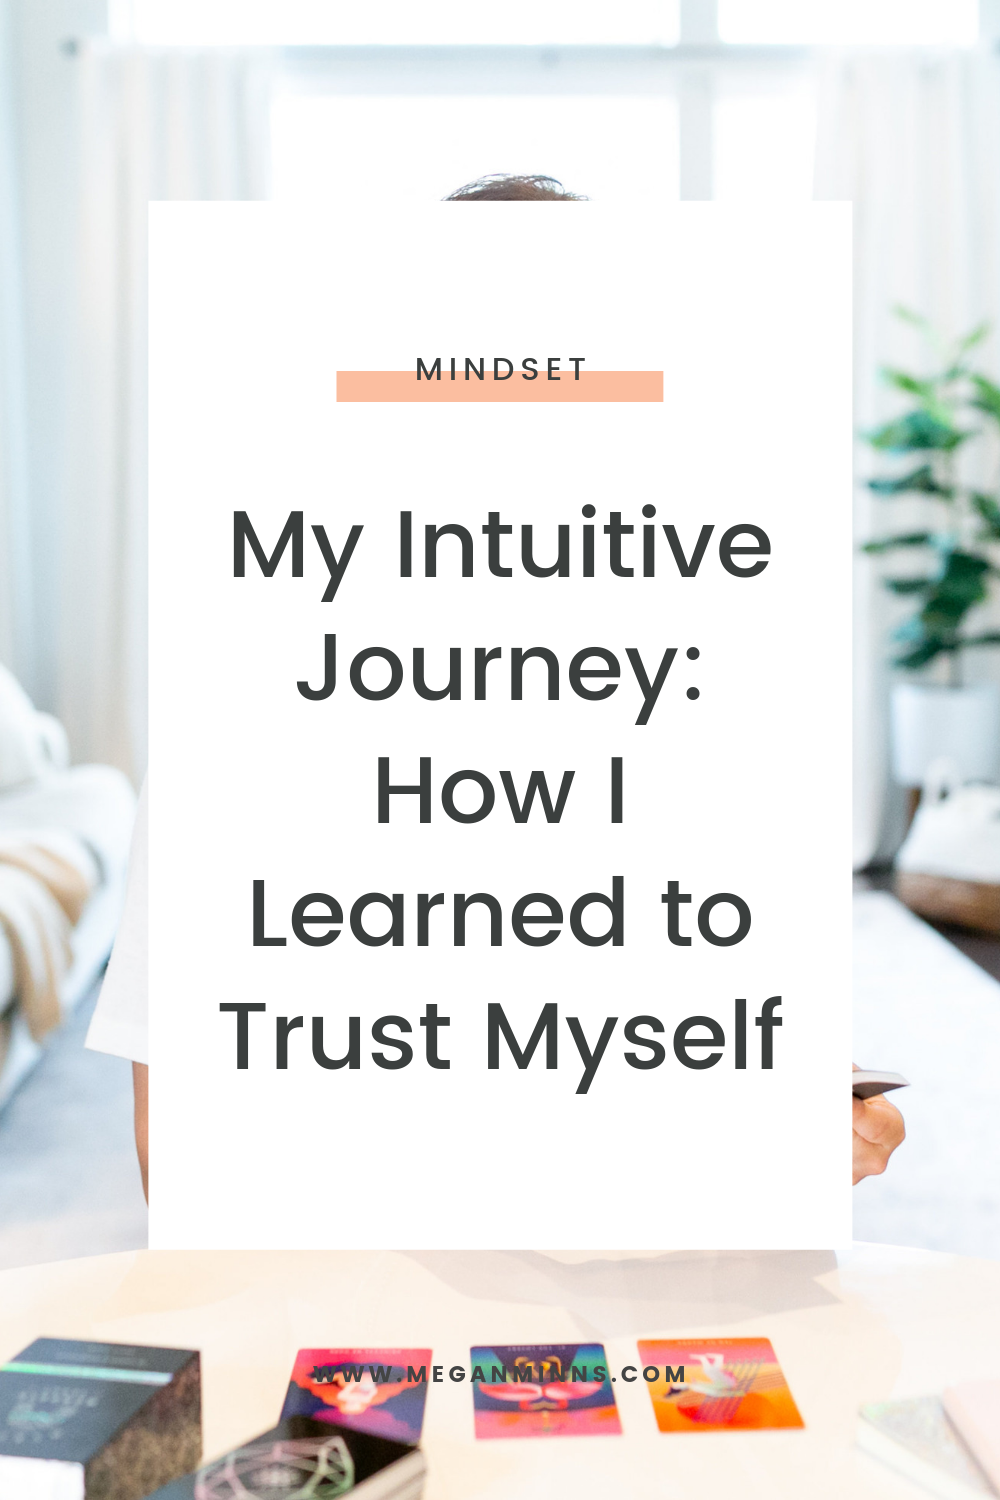 Pre-2019 Megan didn't believe she had an intuition and went so far as to boldly tell a business coach just that.  But I've changed so much from the beginning of 2018 with my journey of curiosity, play, spirituality, and intuition, that I couldn't hold it back any longer.  In today's episode, I'm sharing my story of transformation and what it looks like to start and continue to find and utilize your intuition.  I can't wait for you to listen!  READ THE FULL BLOG POST ➡️ https://meganminns.com/blog/intuitive-journey